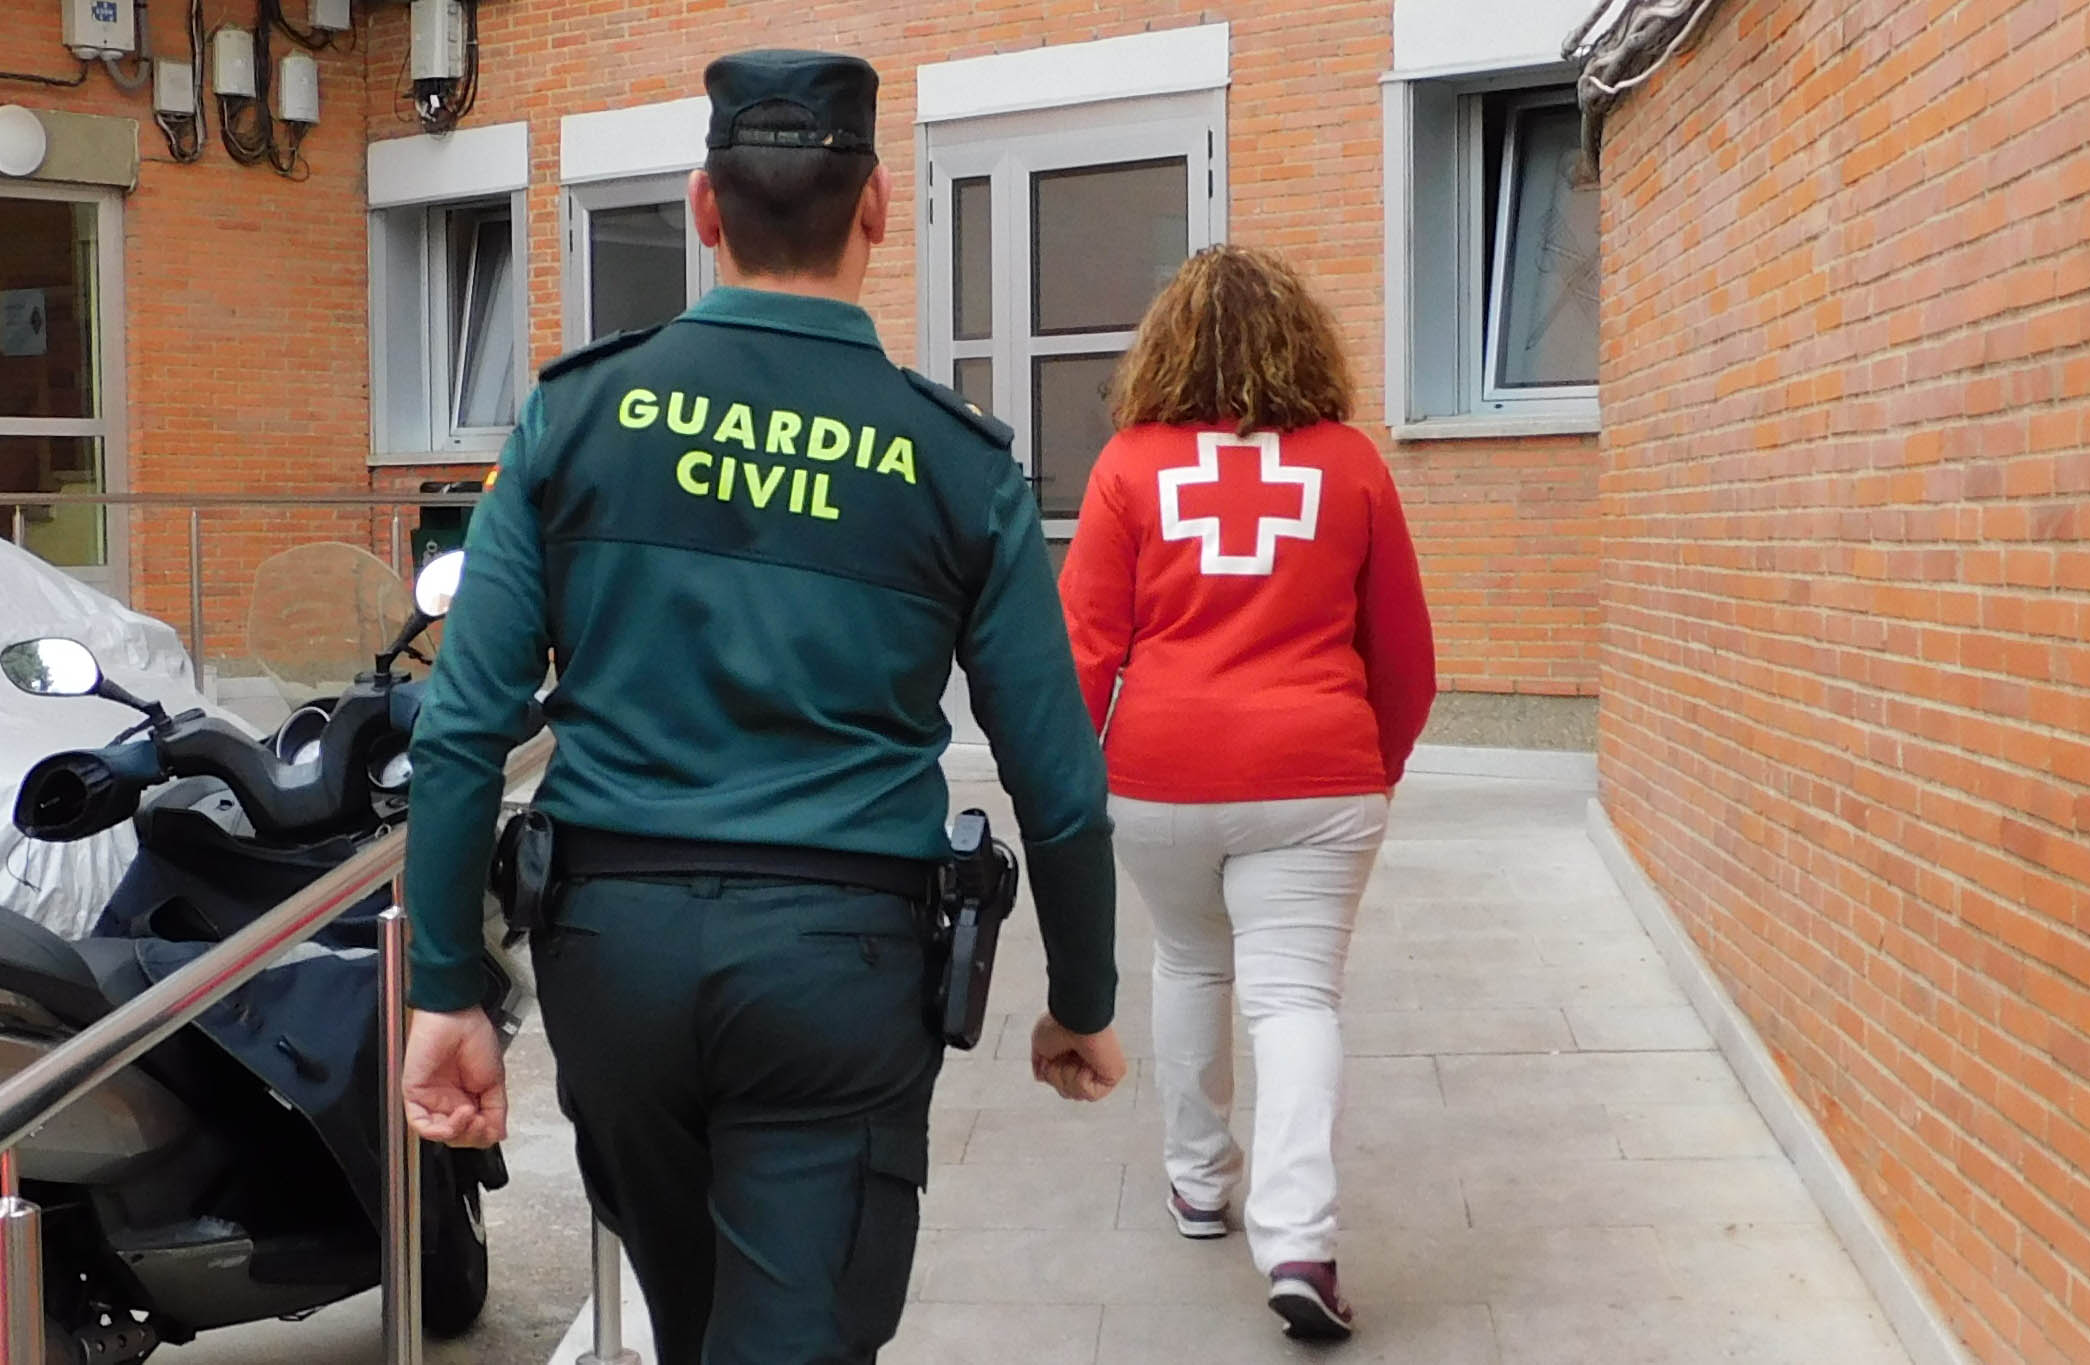 1 guardia civil zamora cruz roja